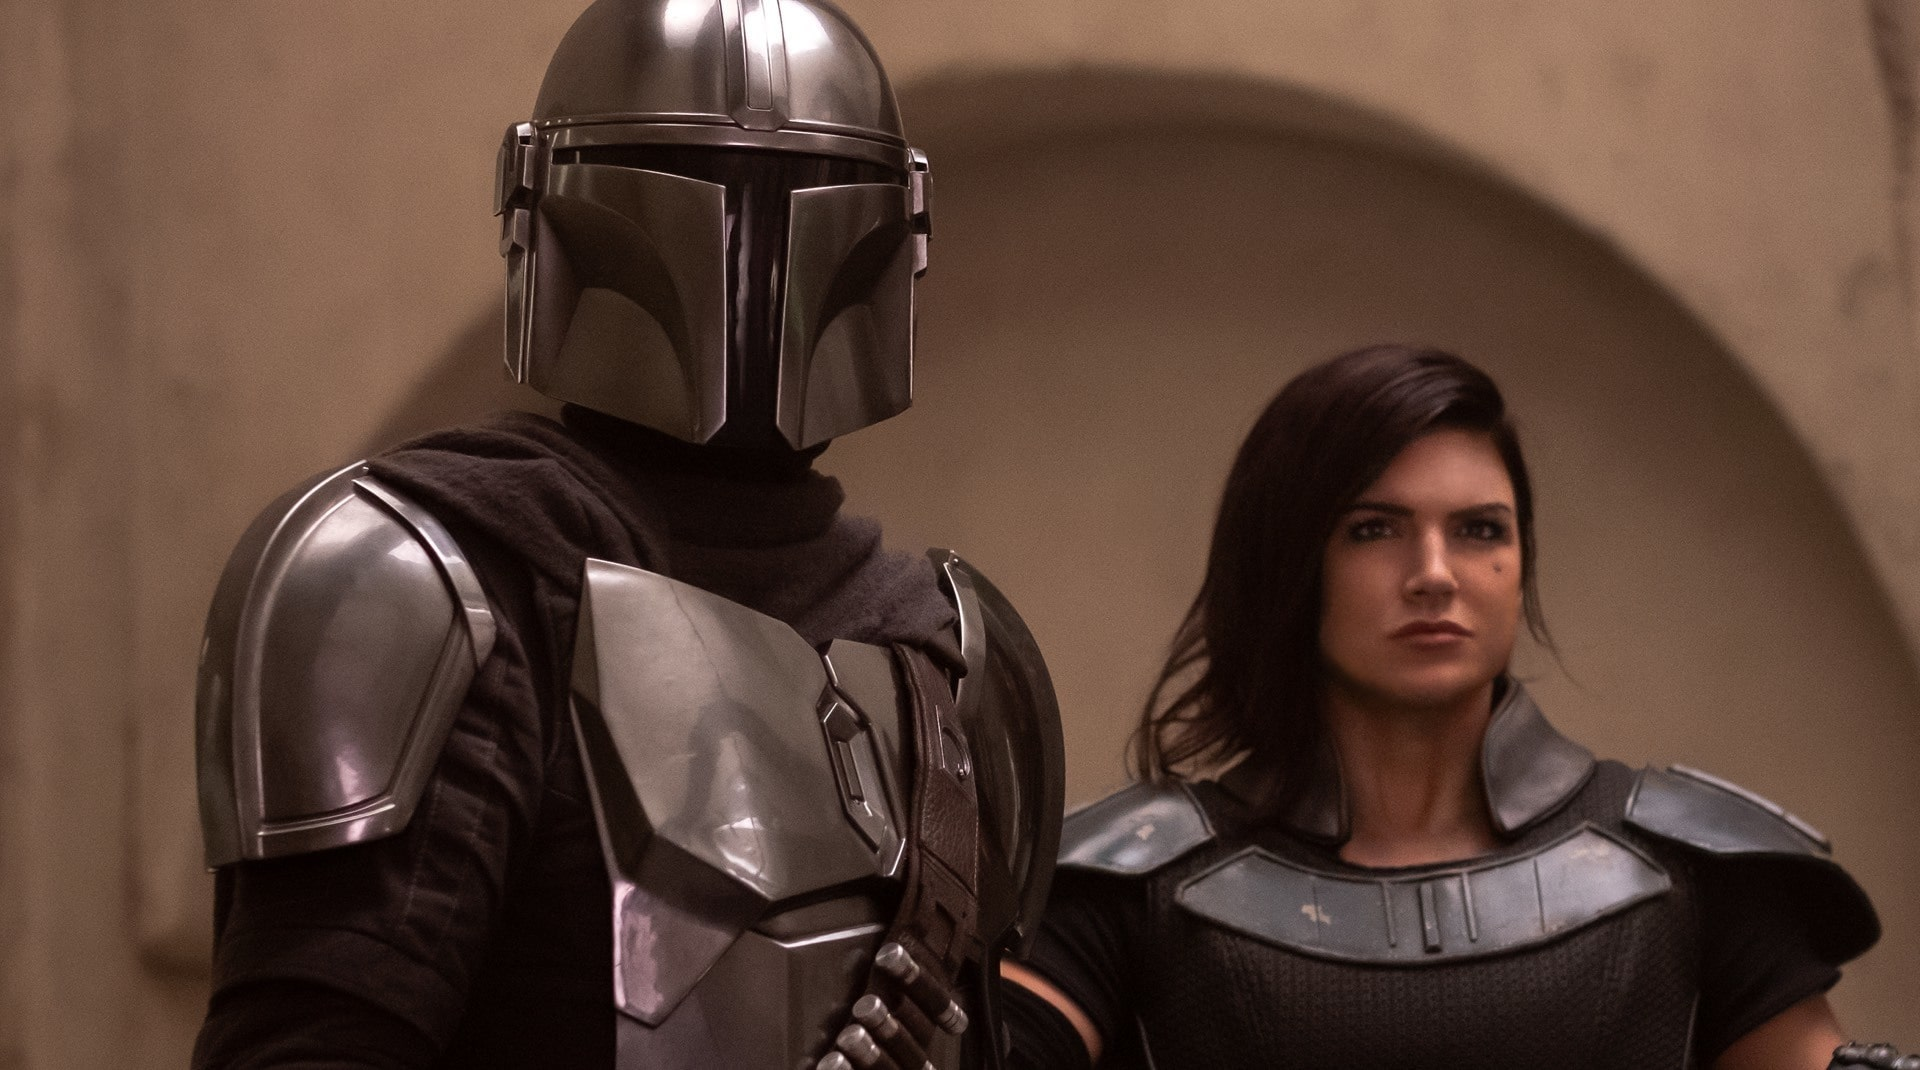 A still image from The Mandalorian